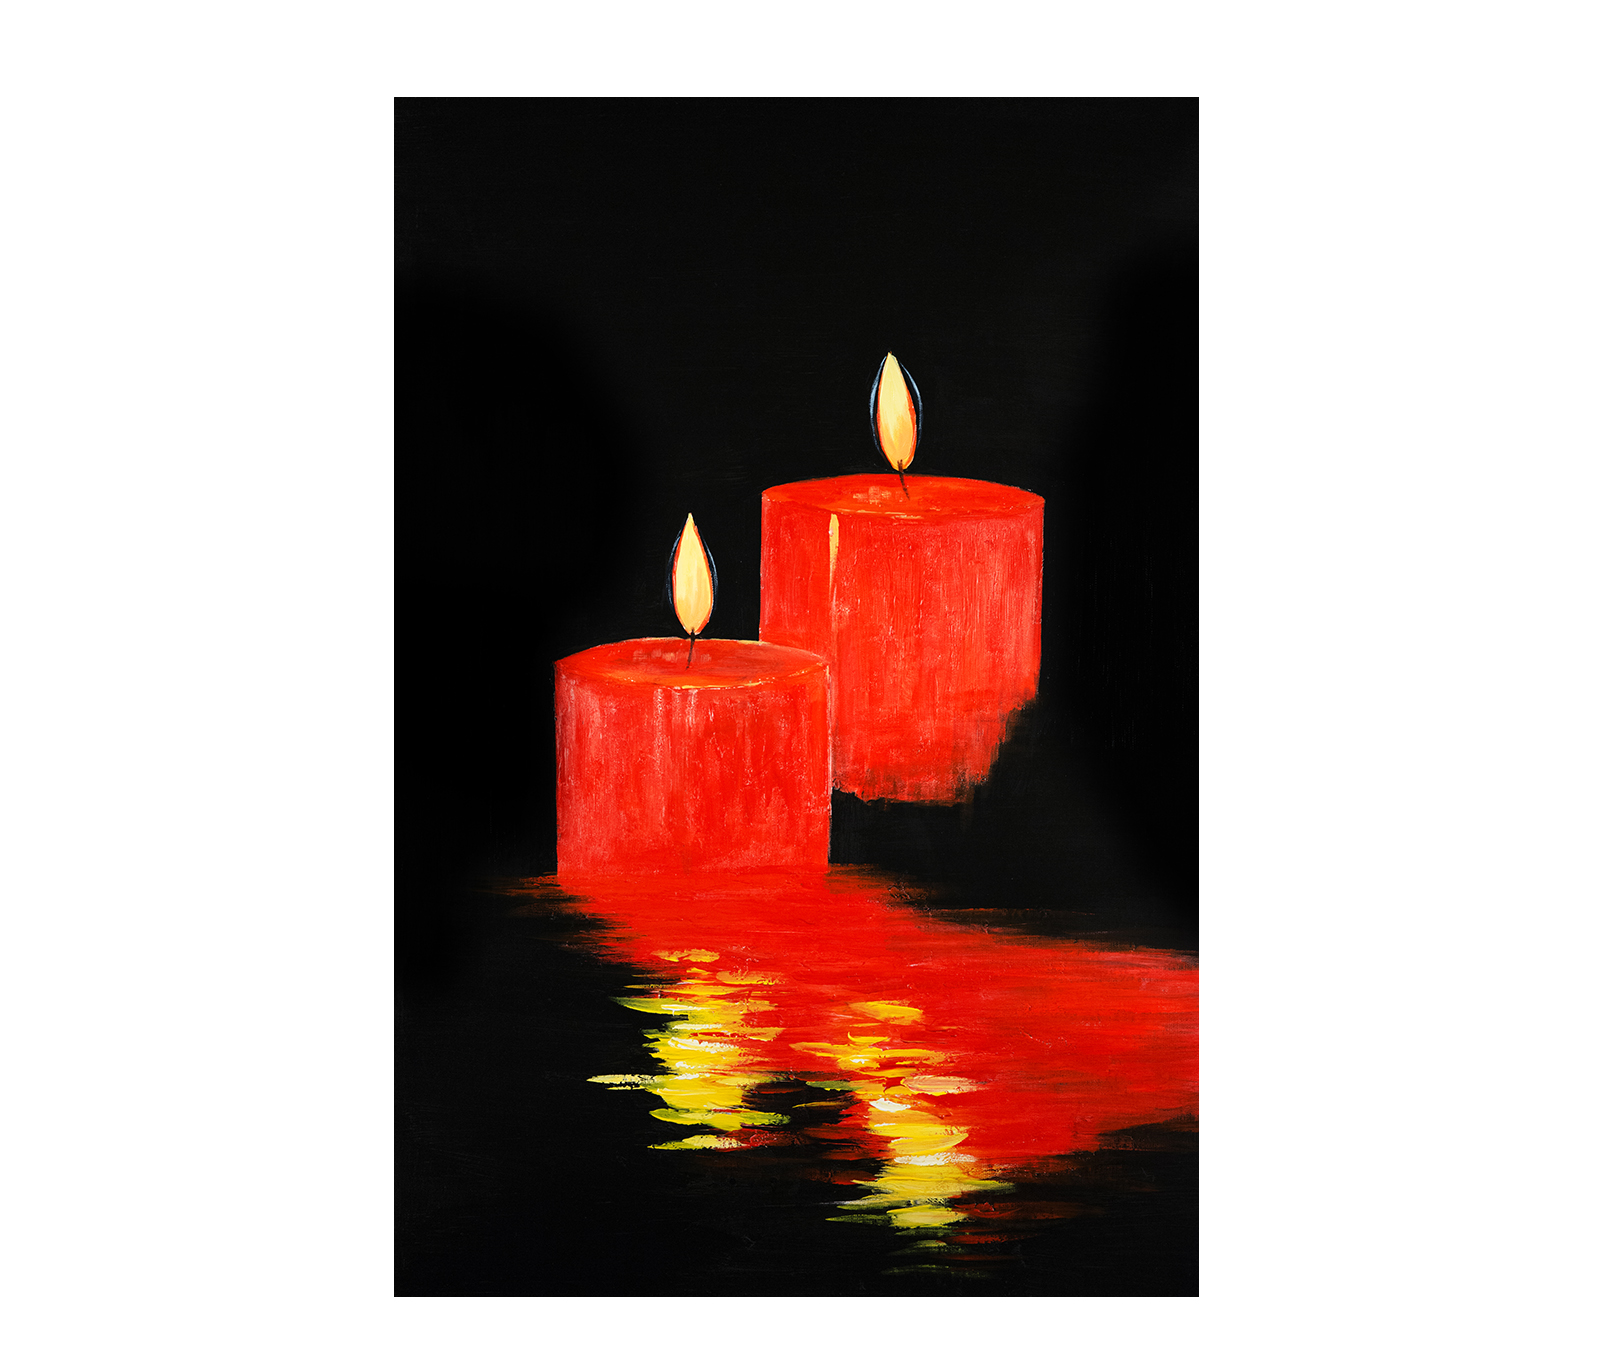 29   Best Melting Candle for Melting Candle Painting  174mzq